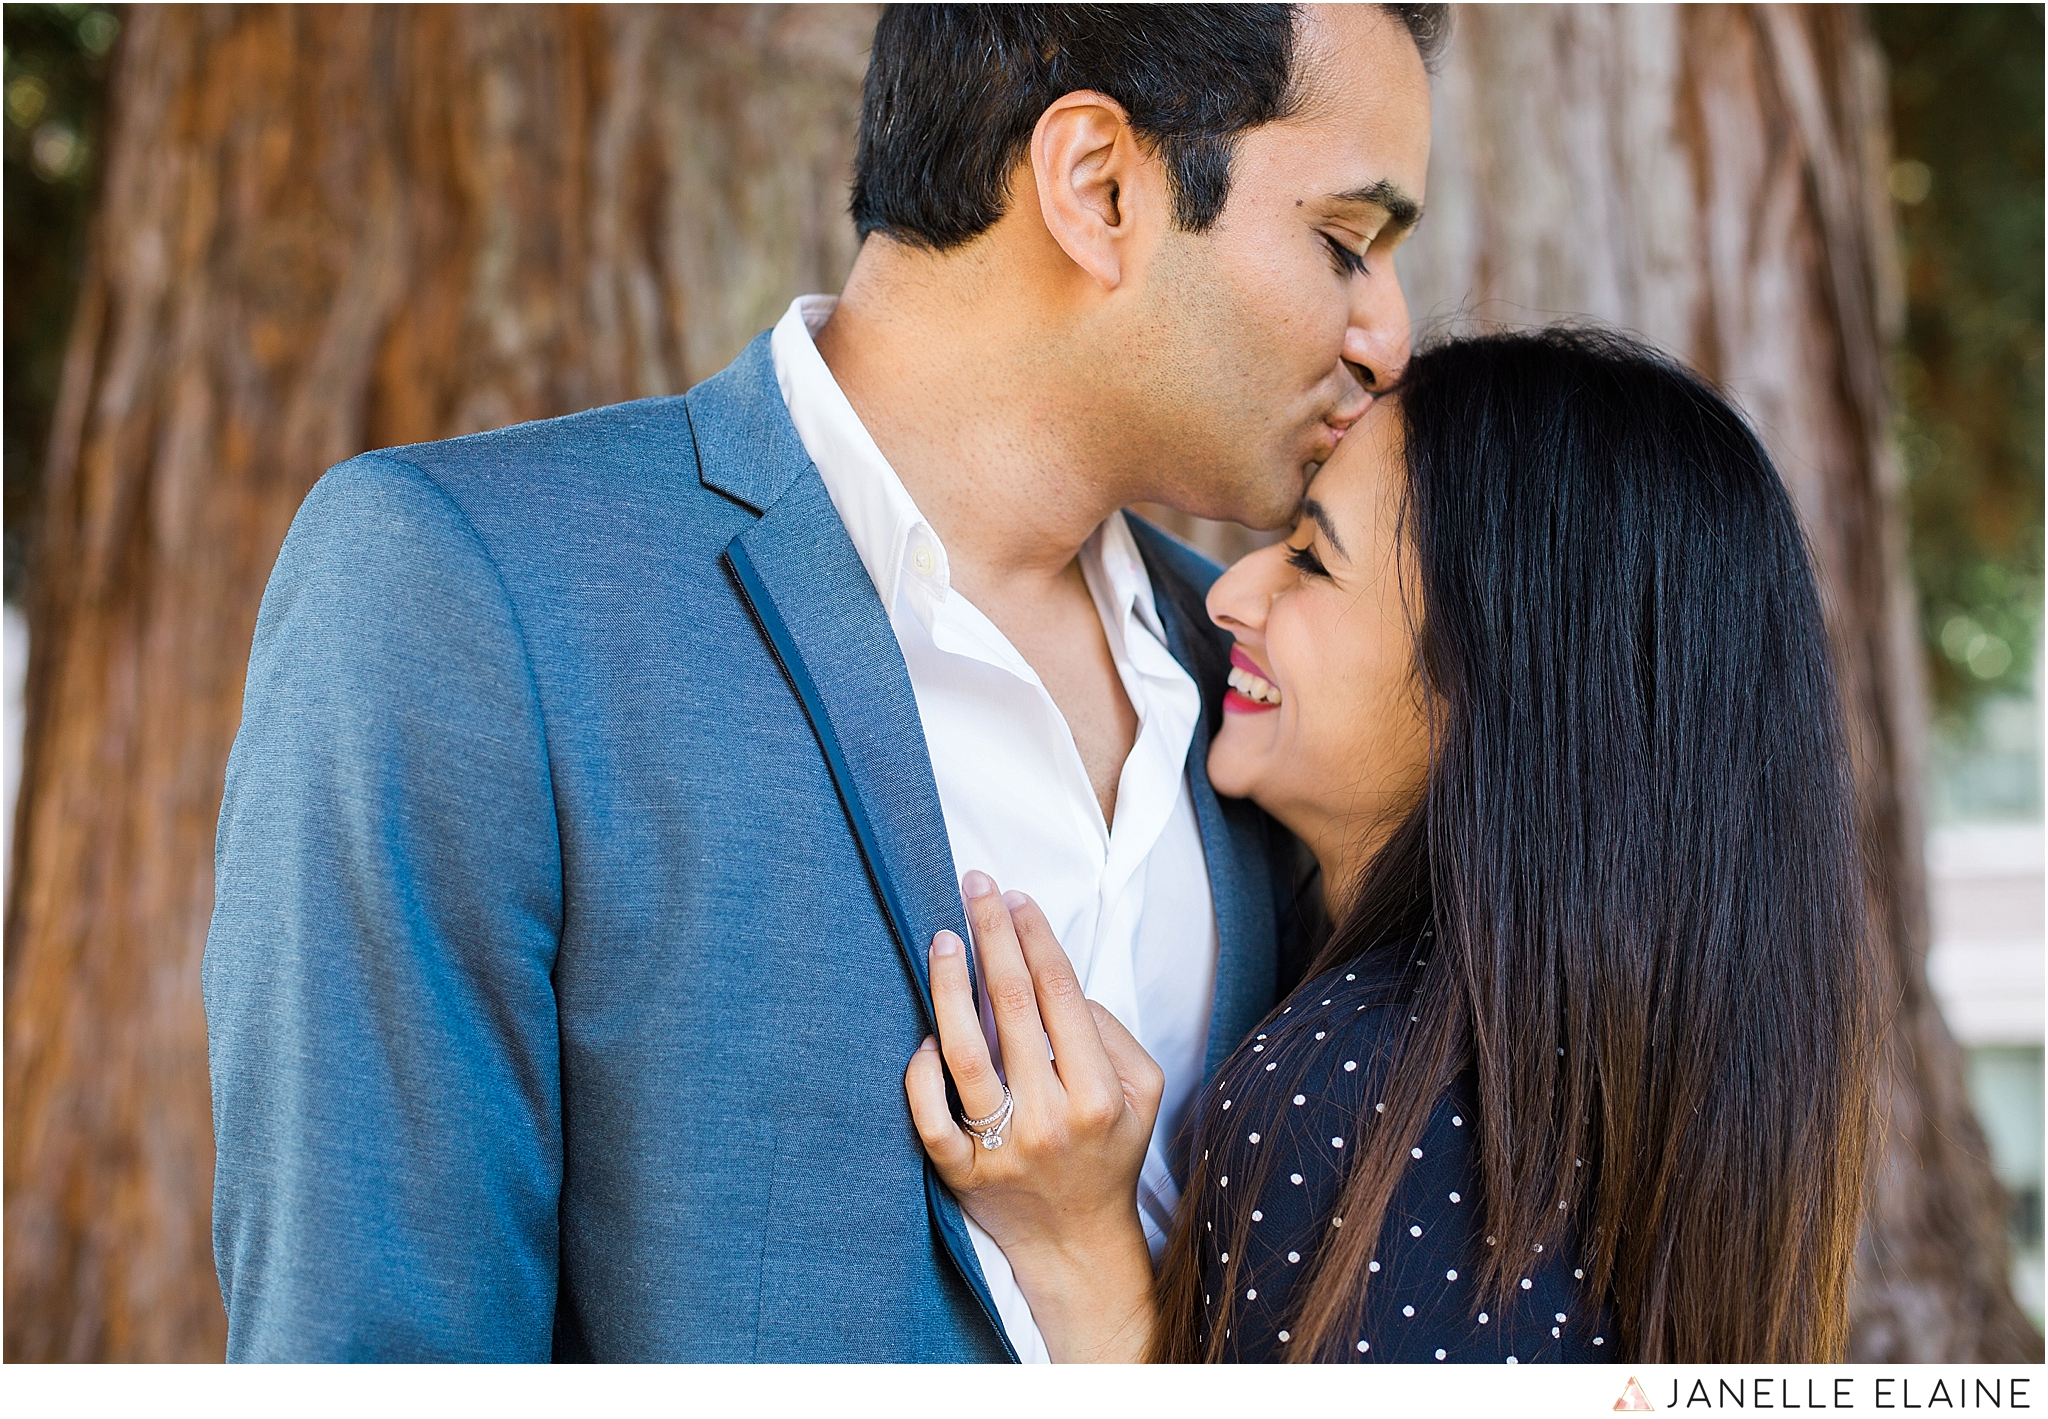 janelle elaine photography-zain and umema-seattle-uw-red square-engagement-photographer-14.jpg